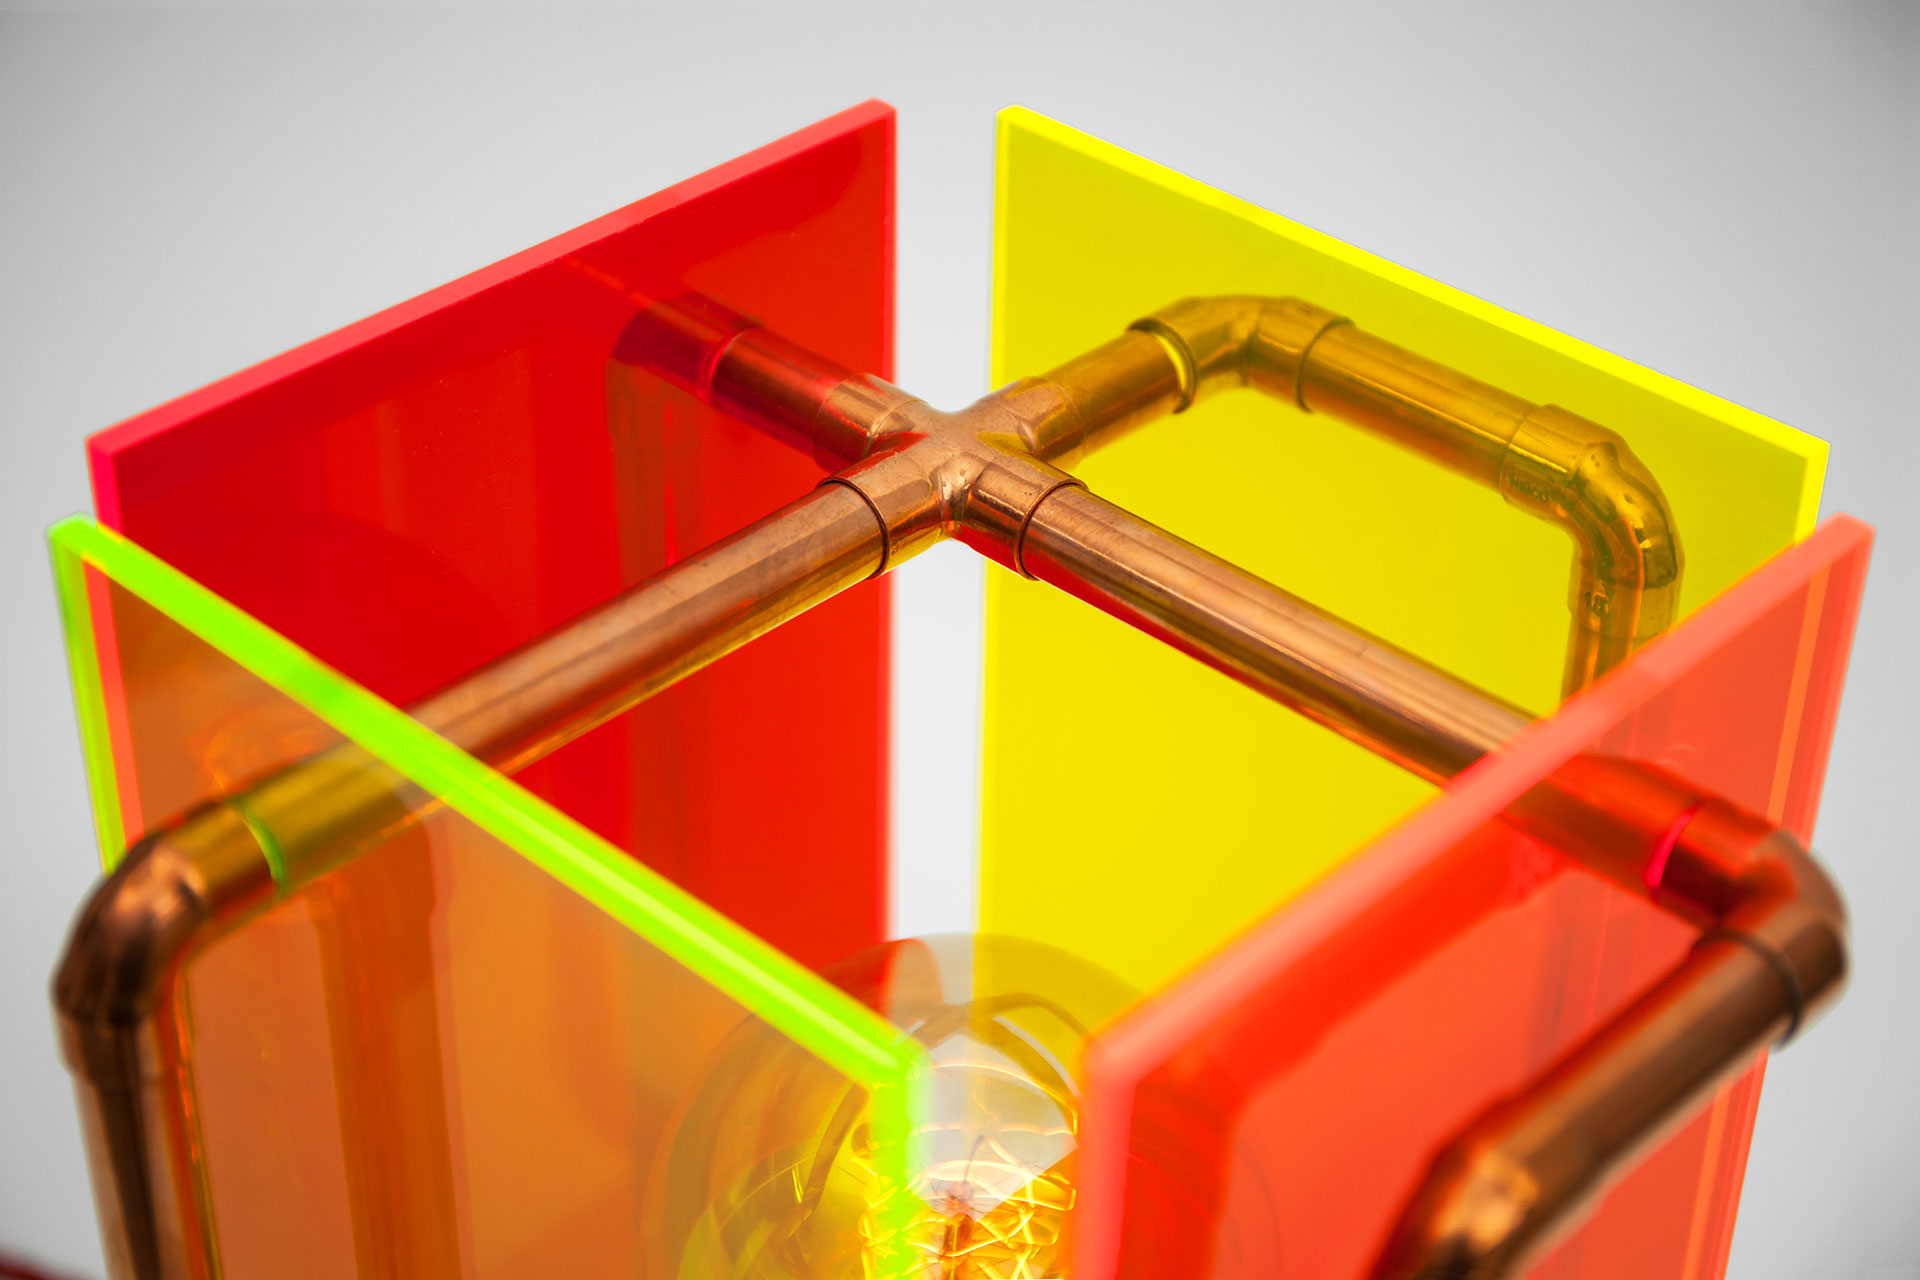 Designer lighting tabel lamp in colorful plexiglas and copper pipes inspired by modern fun art